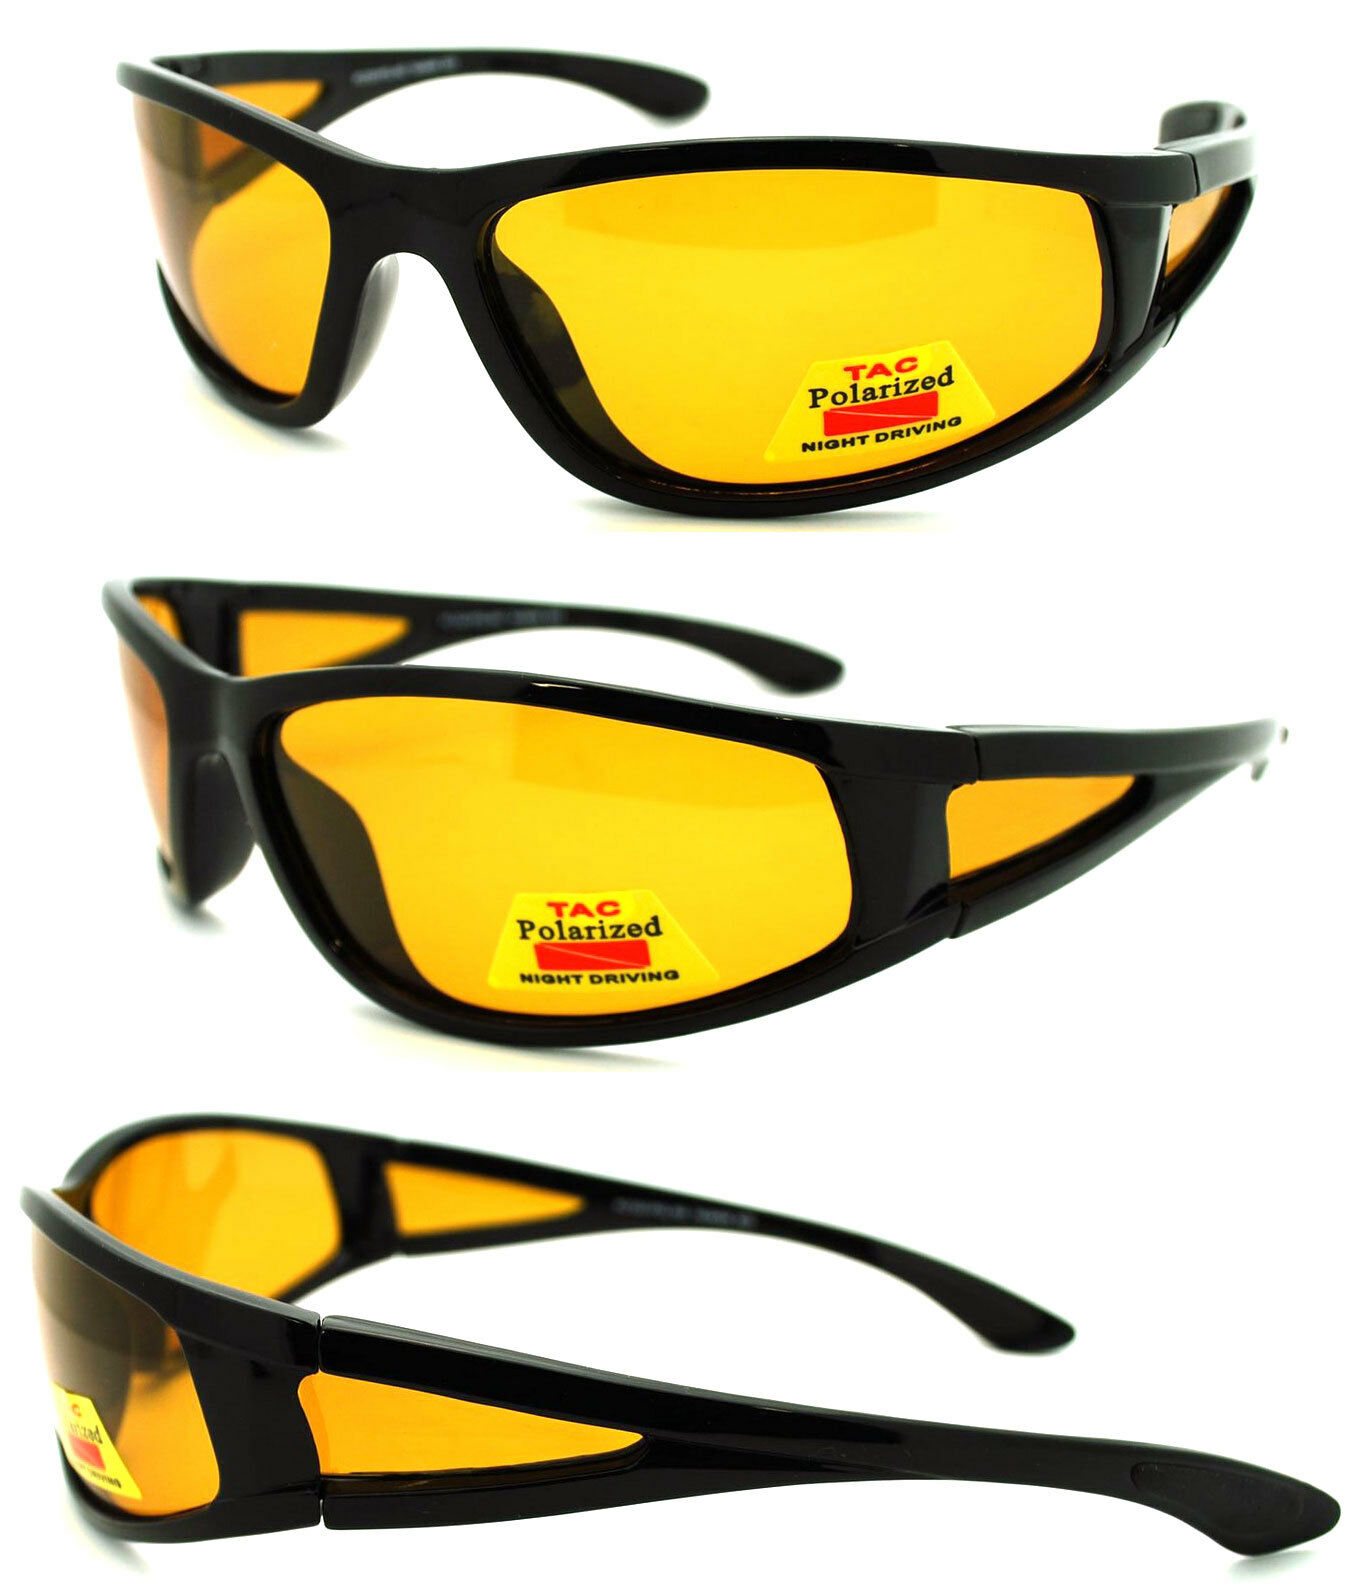 Night Driving HD Vision Polarized Sunglasses Black Frame Yellow Lens 100/% UV 400